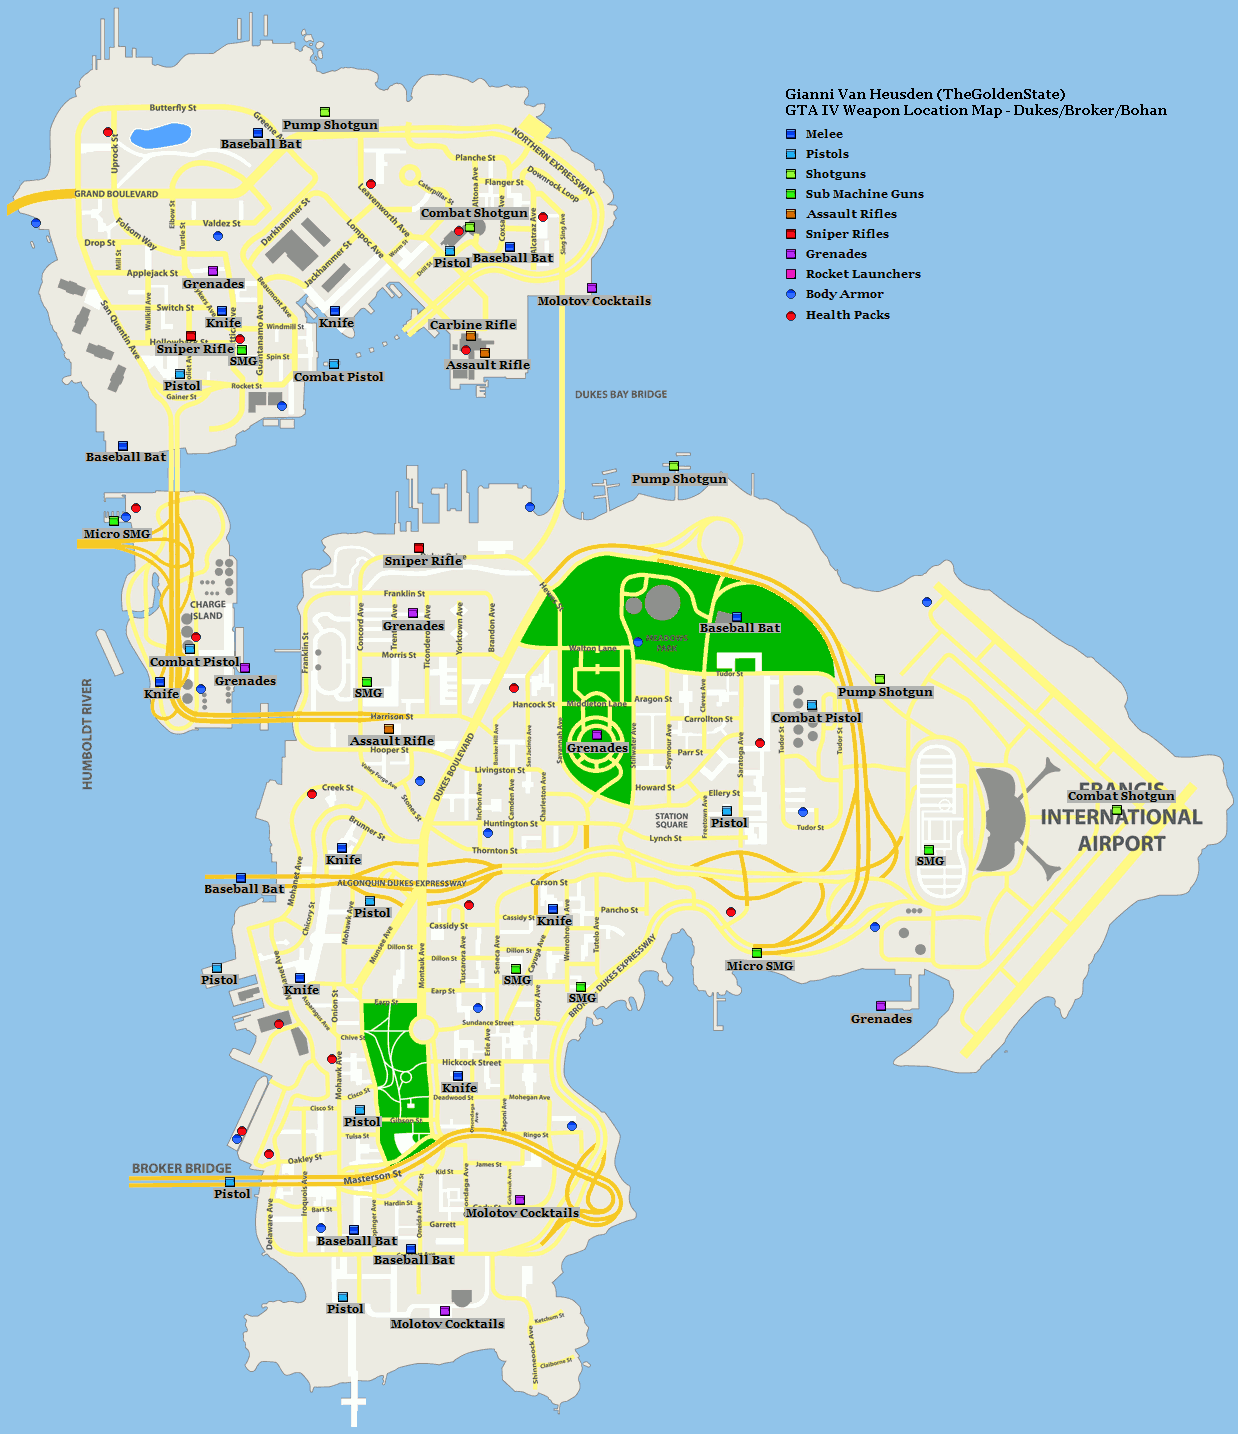 Grand theft auto iv weapon location map dukes broker bohan png